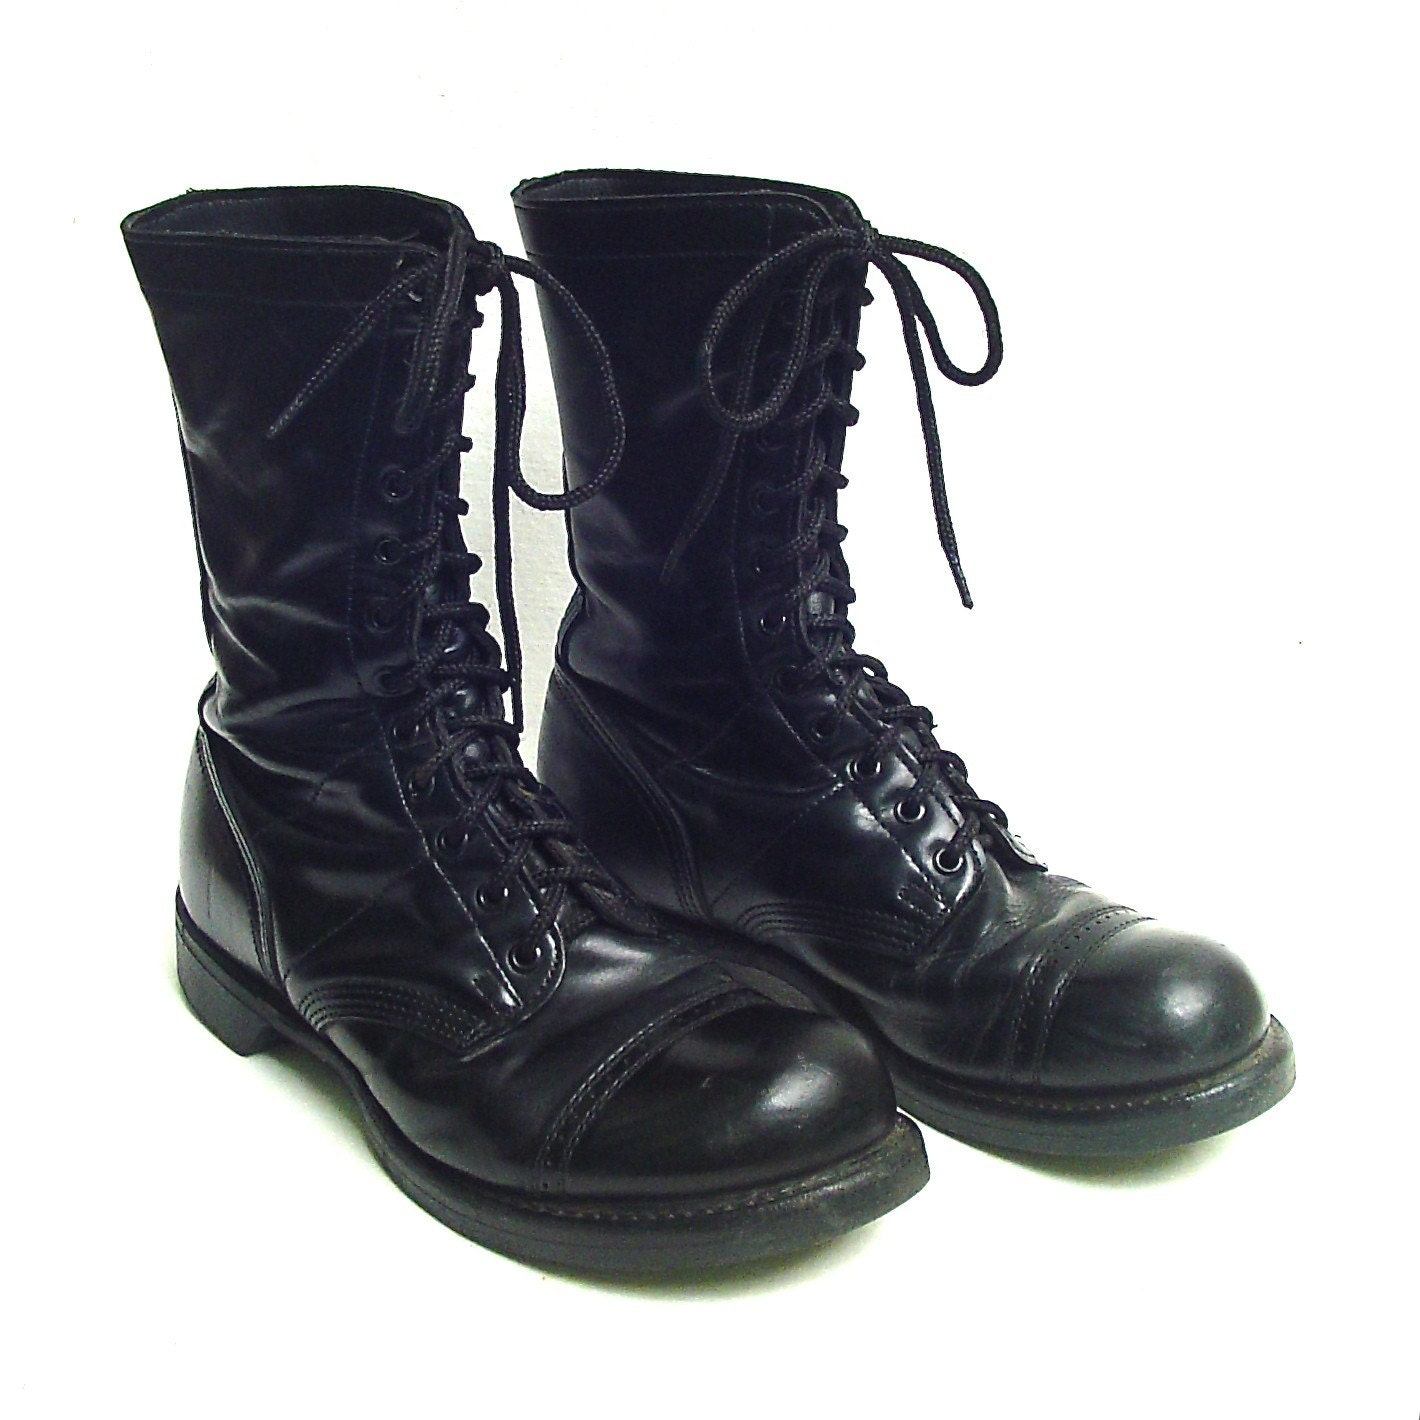 Mens black boots - deals on 1001 Blocks